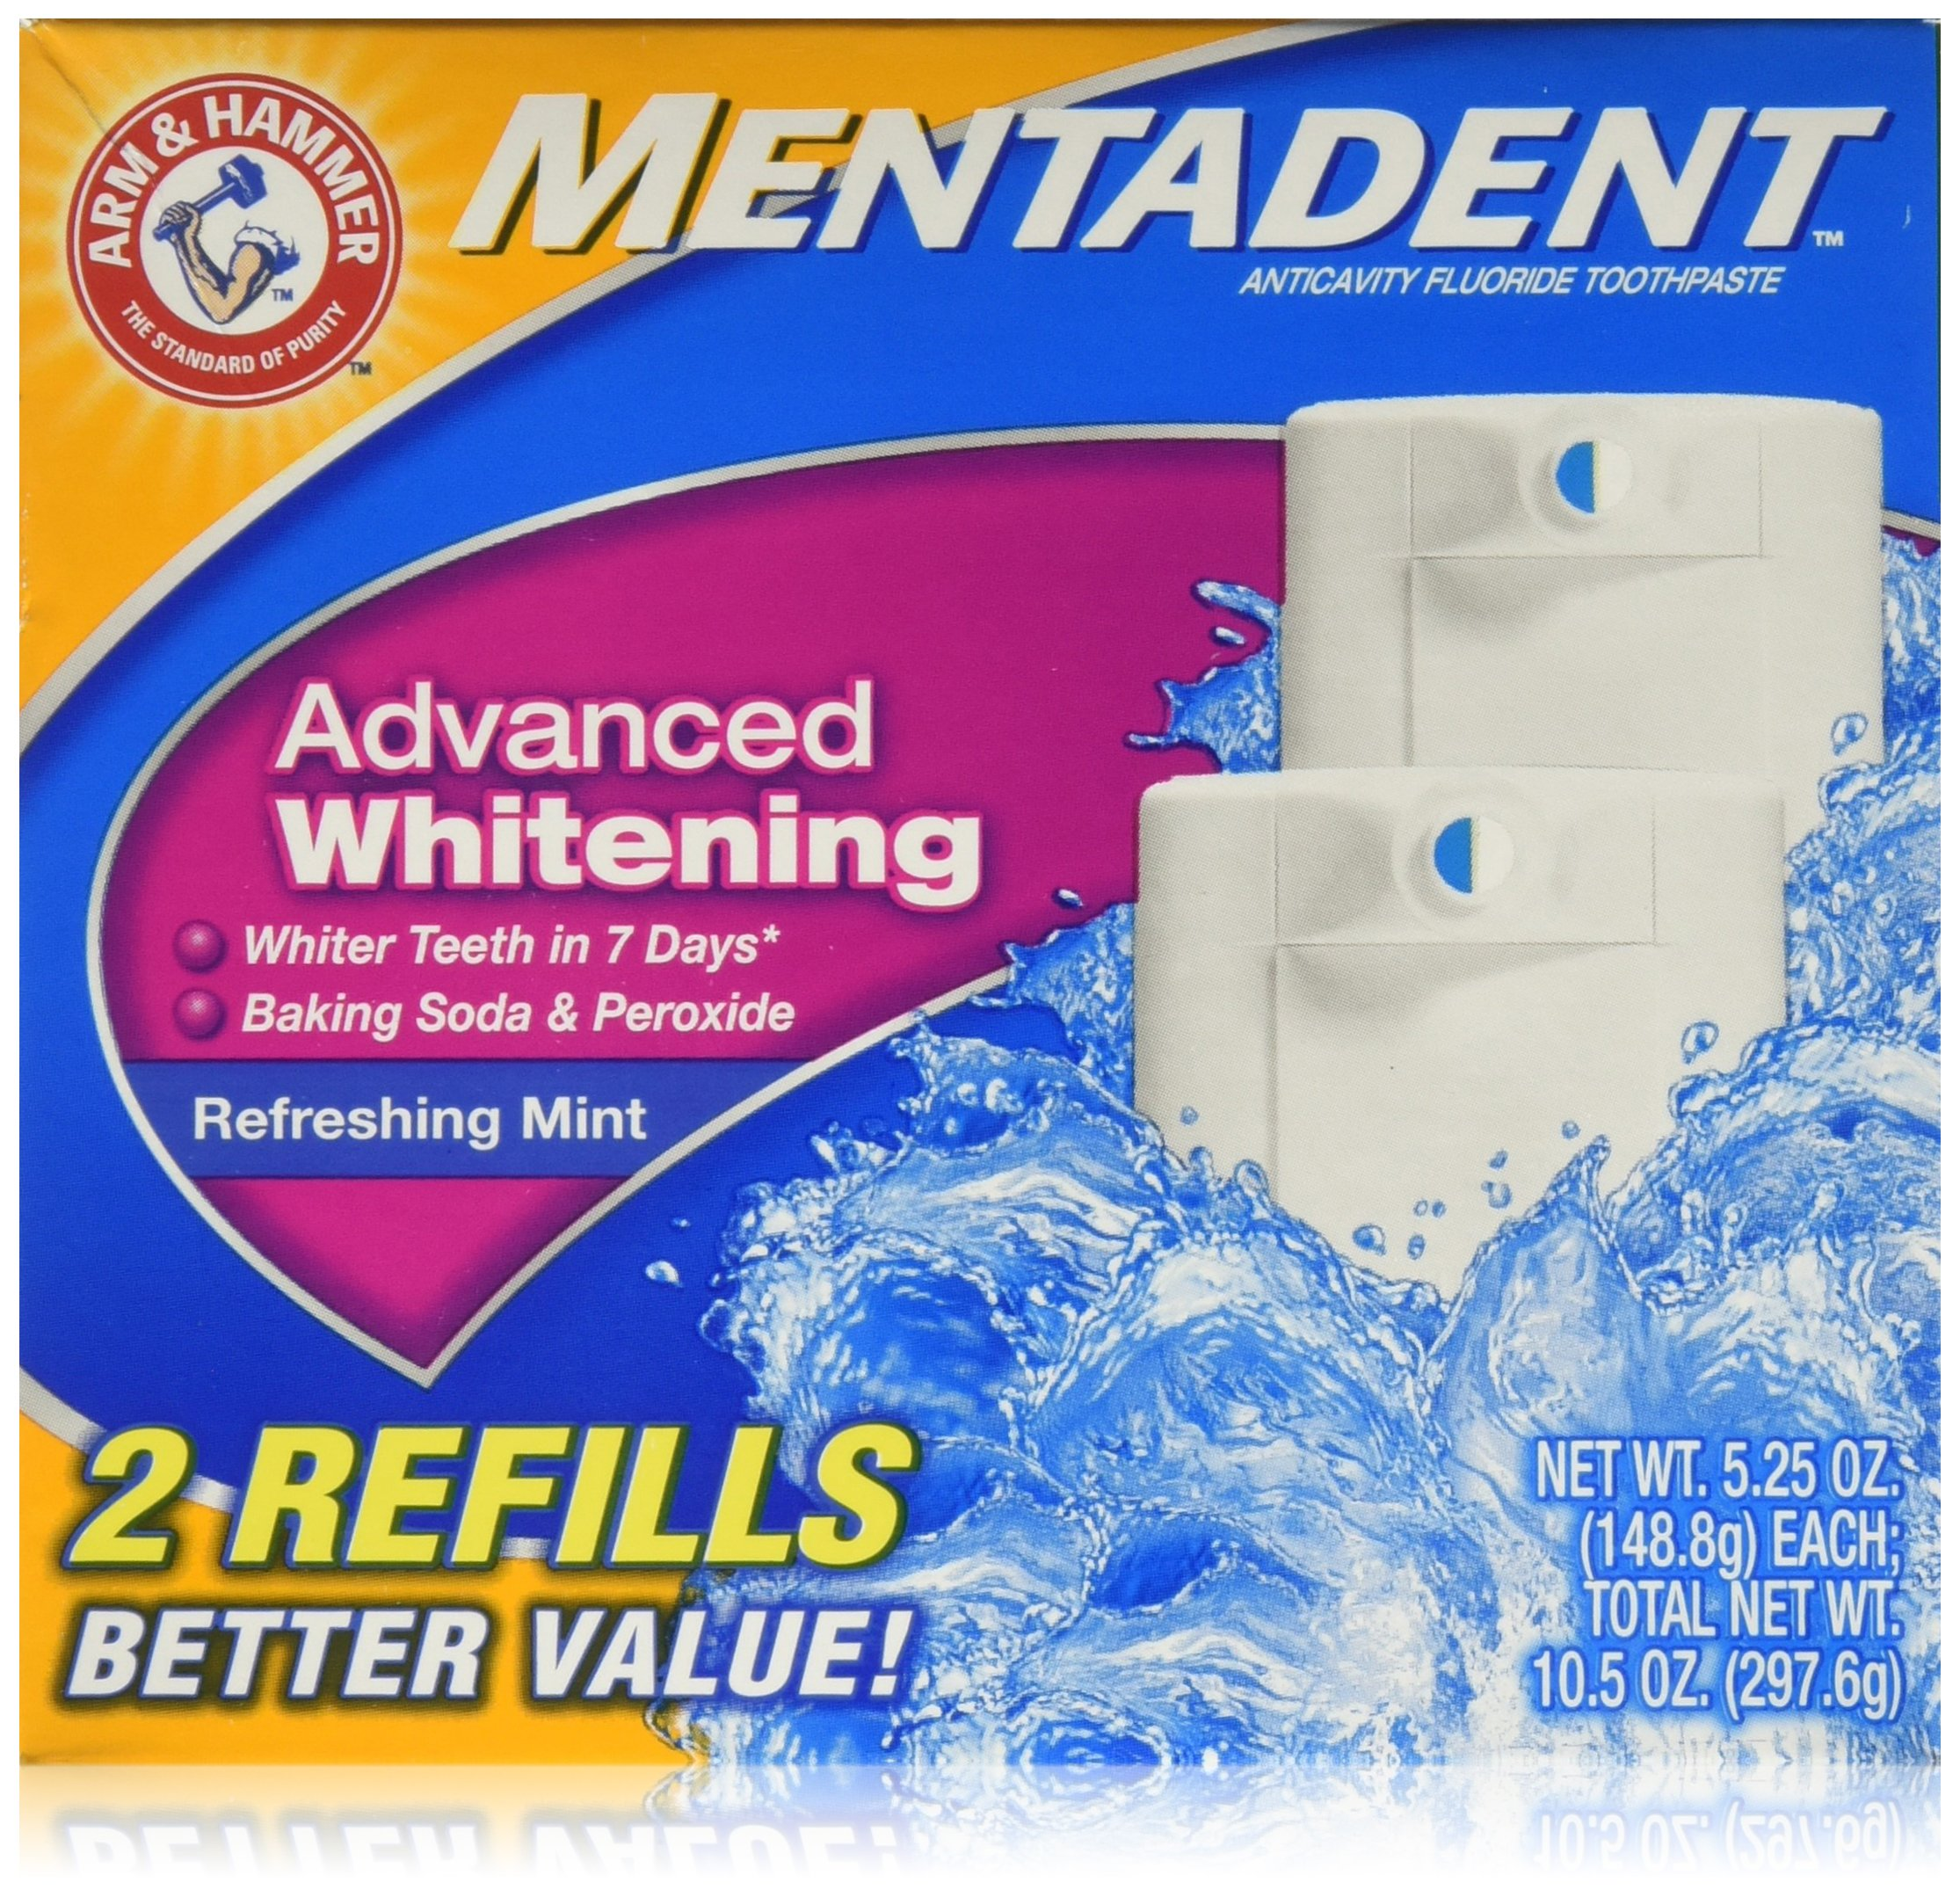 Arm & Hammer Mentadent Advanced Whitening Toothpaste, Twin Refills, 10.5 Ounce (2 pack) by Arm & Hammer (Image #1)